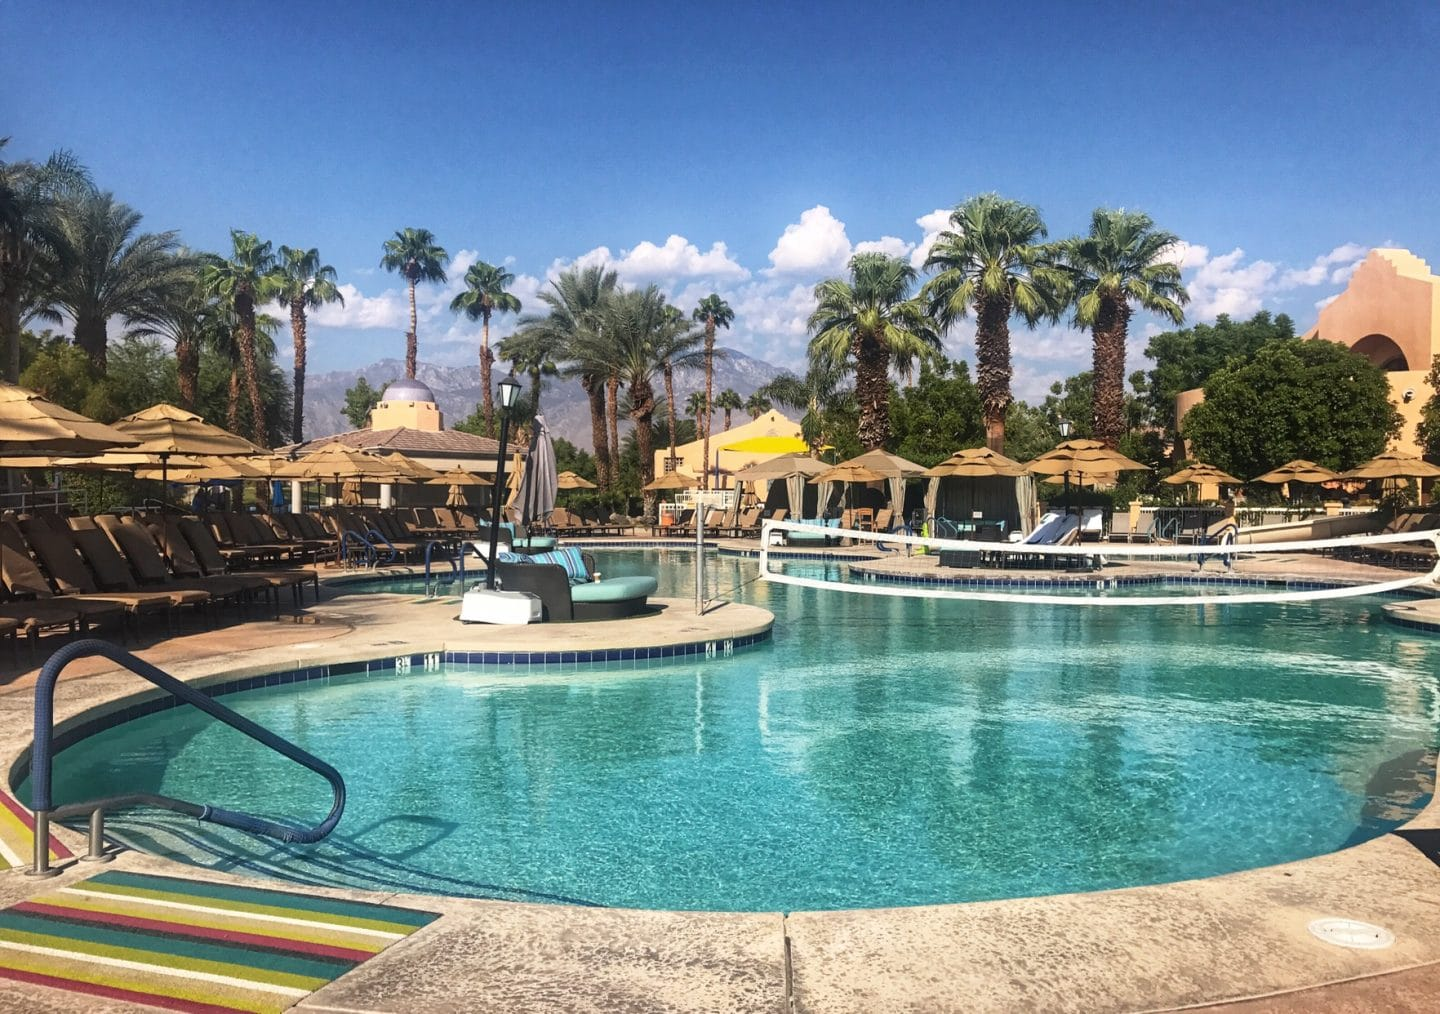 Staying at The Westin Mission Hills Golf Resort and Spa in Palm Springs